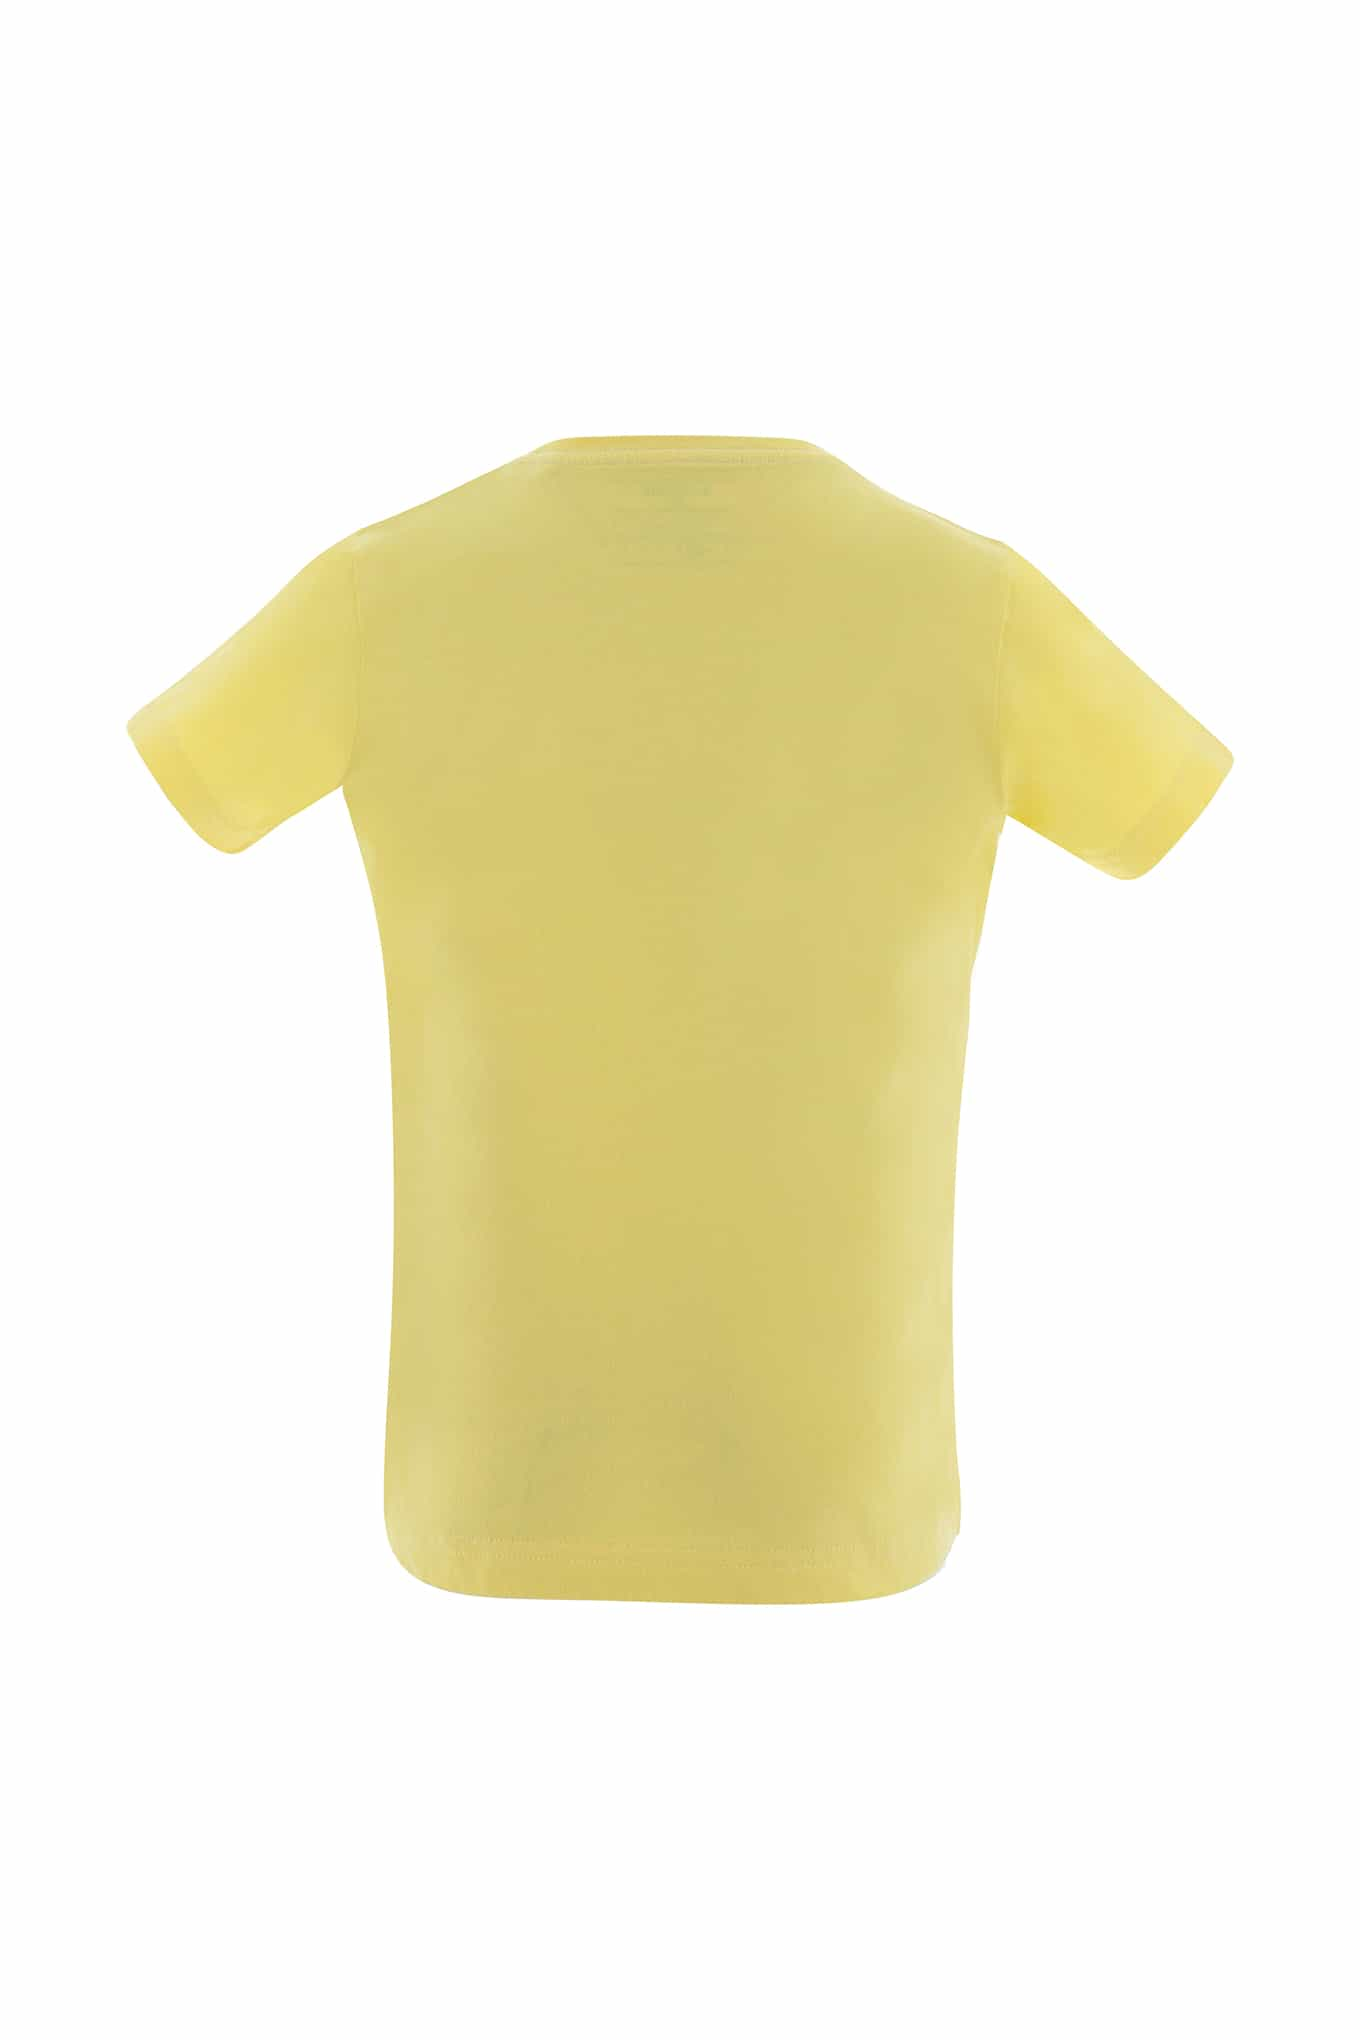 T-Shirt Lemonade Sport Boy